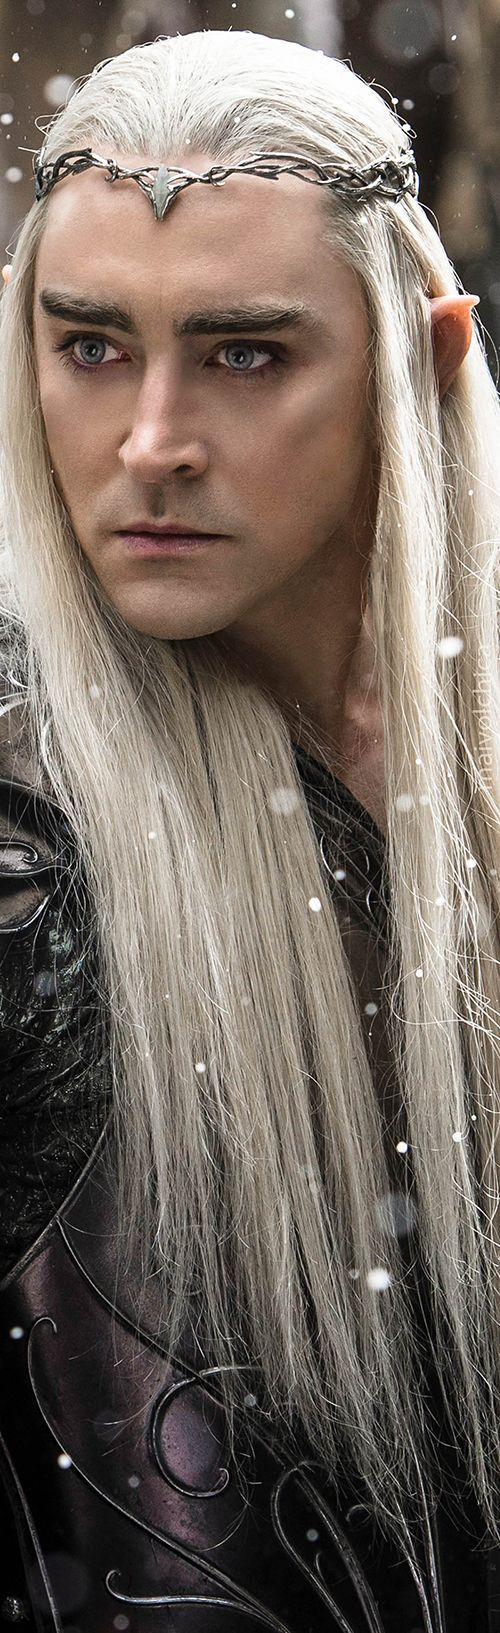 Thranduil, son of Oropher, was an Elven king who ruled over the Woodland Realm in the Second and Third Ages. Though inherently cautious, he eventually committed his kingdom to fighting Sauron in the War of the Ring. He was also the father of the elven prince of Mirkwood, Legolas, who was a member of the Fellowship of the Ring.